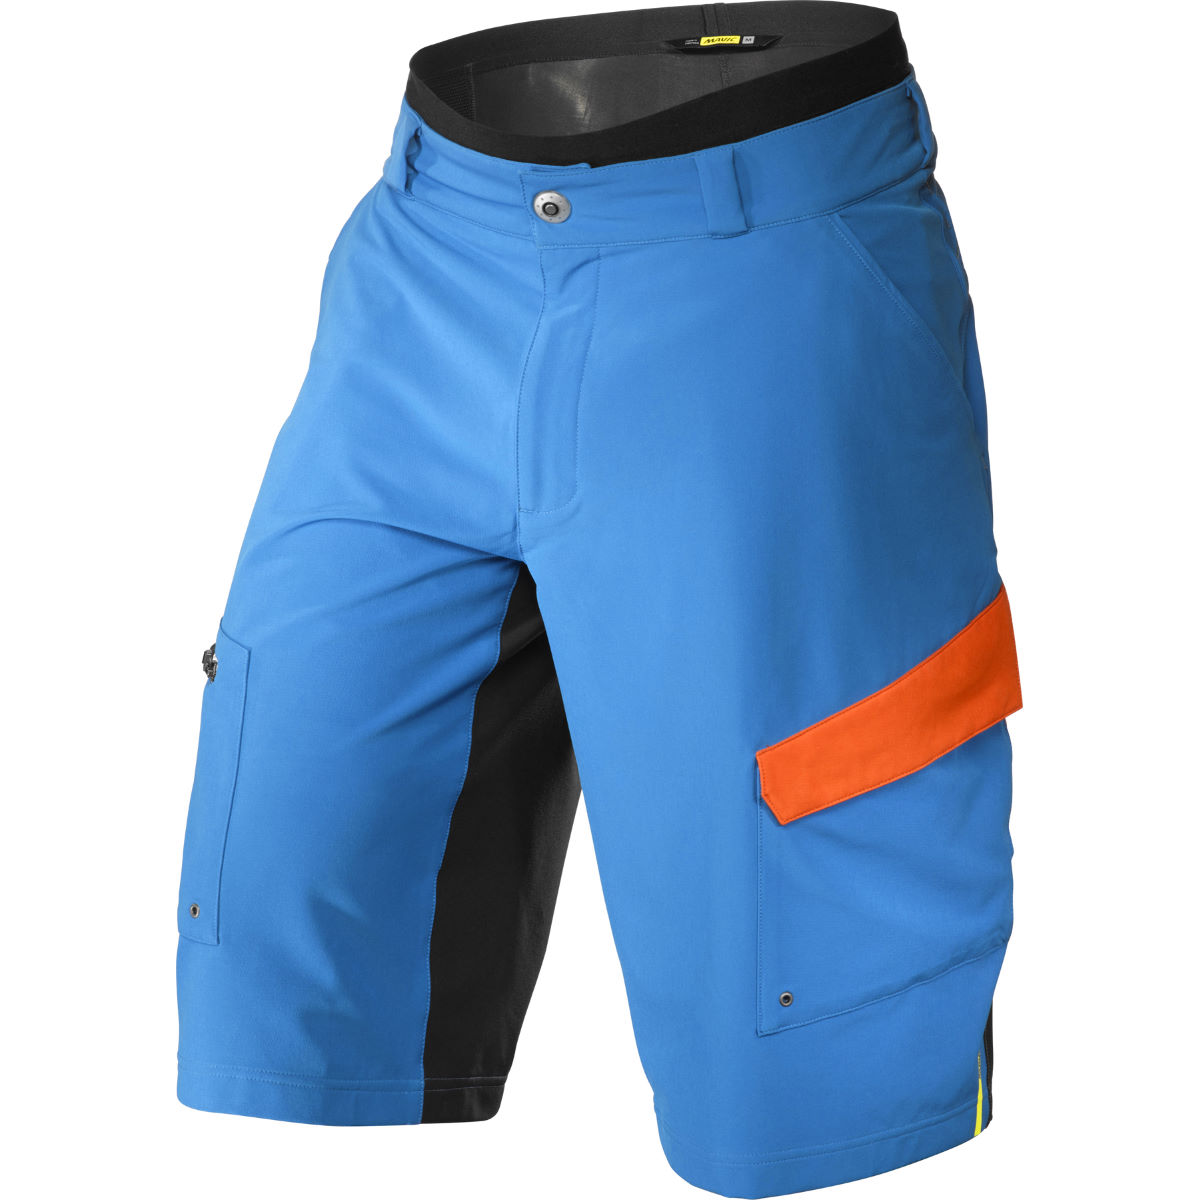 Ensemble short Mavic Crossmax Pro - XL Montana/Orange Shorts VTT